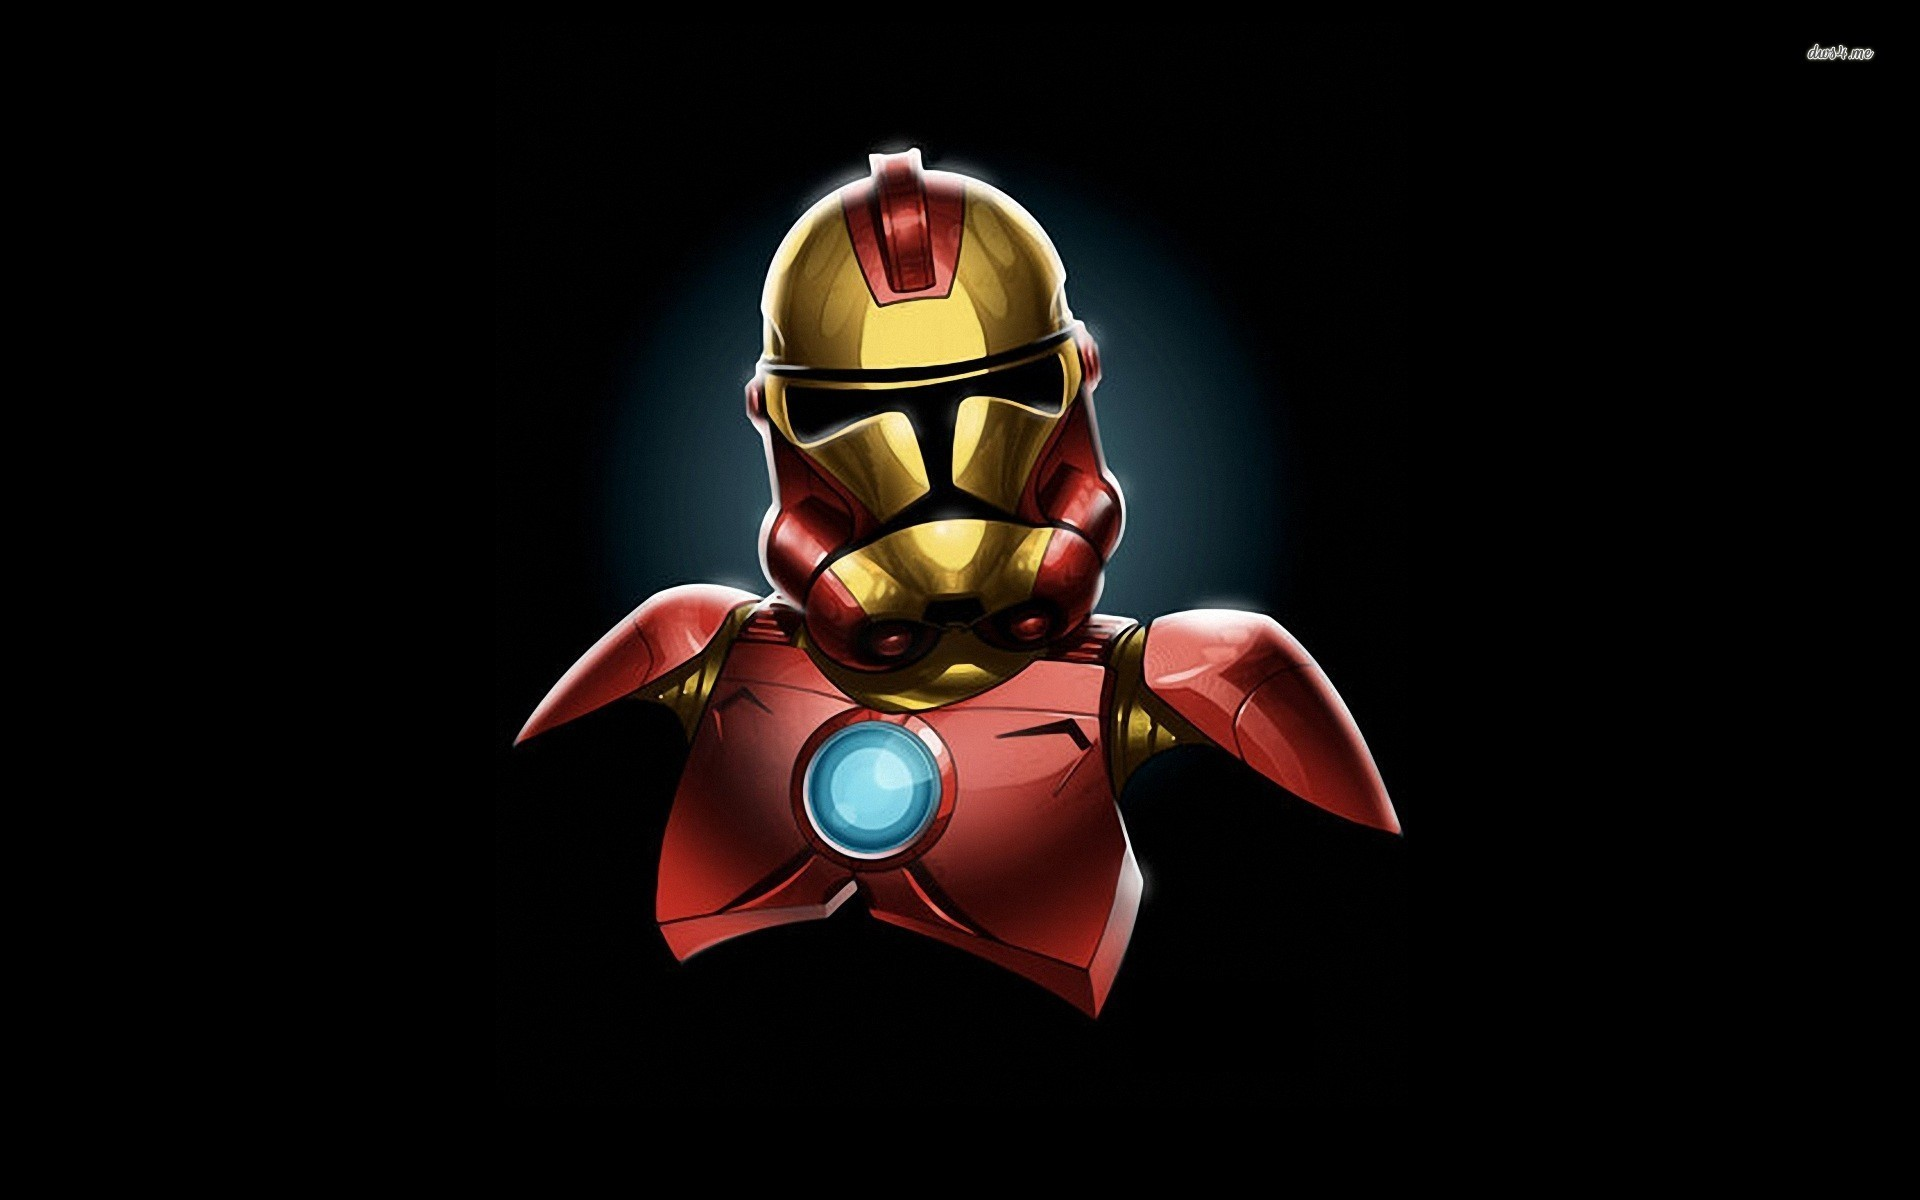 Res: 1920x1200, 50 Iron Man Stormtrooper Iron Man Wallpapers - Full HD wallpaper search -  page 8